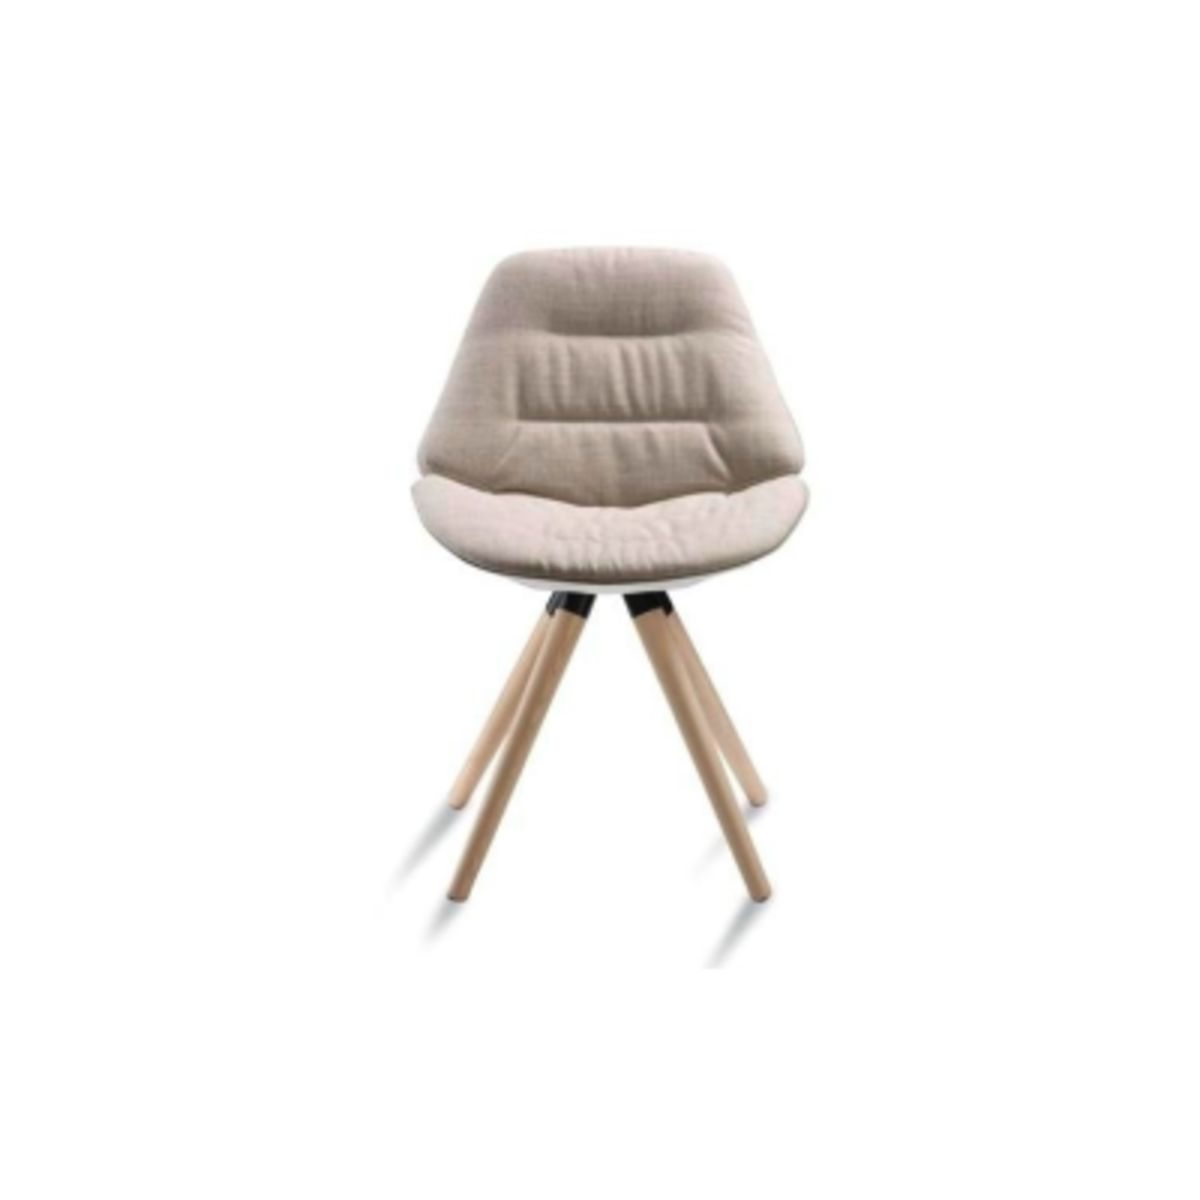 Cool Eon Upholstered Dining Chair Wood Base By Diemme Pabps2019 Chair Design Images Pabps2019Com